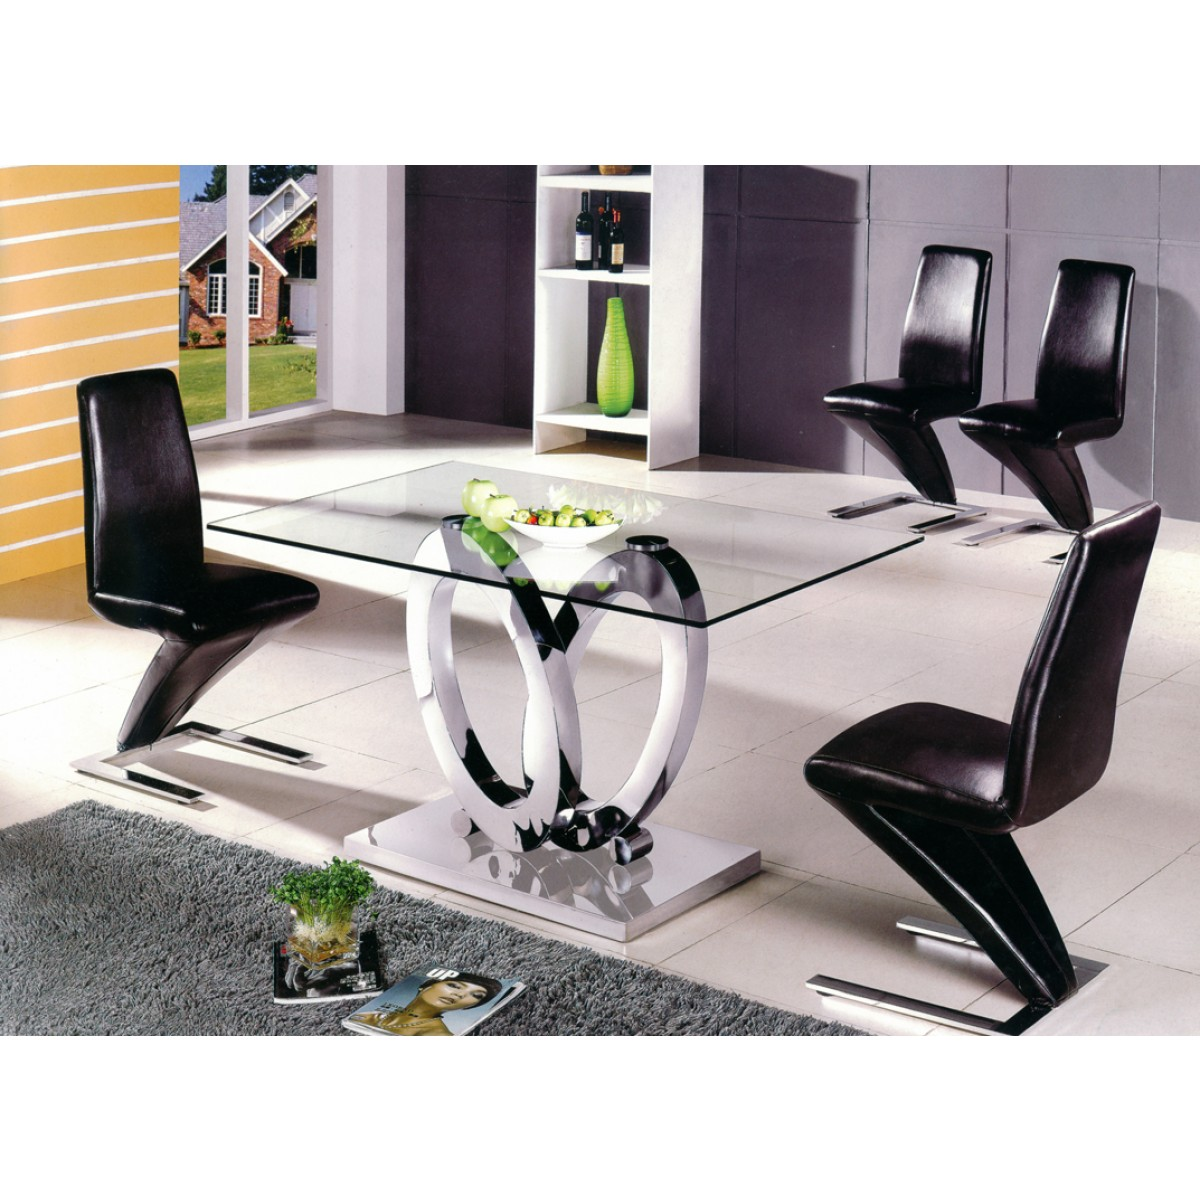 Table manger design ellipse taille au choix tables for Solde table a manger